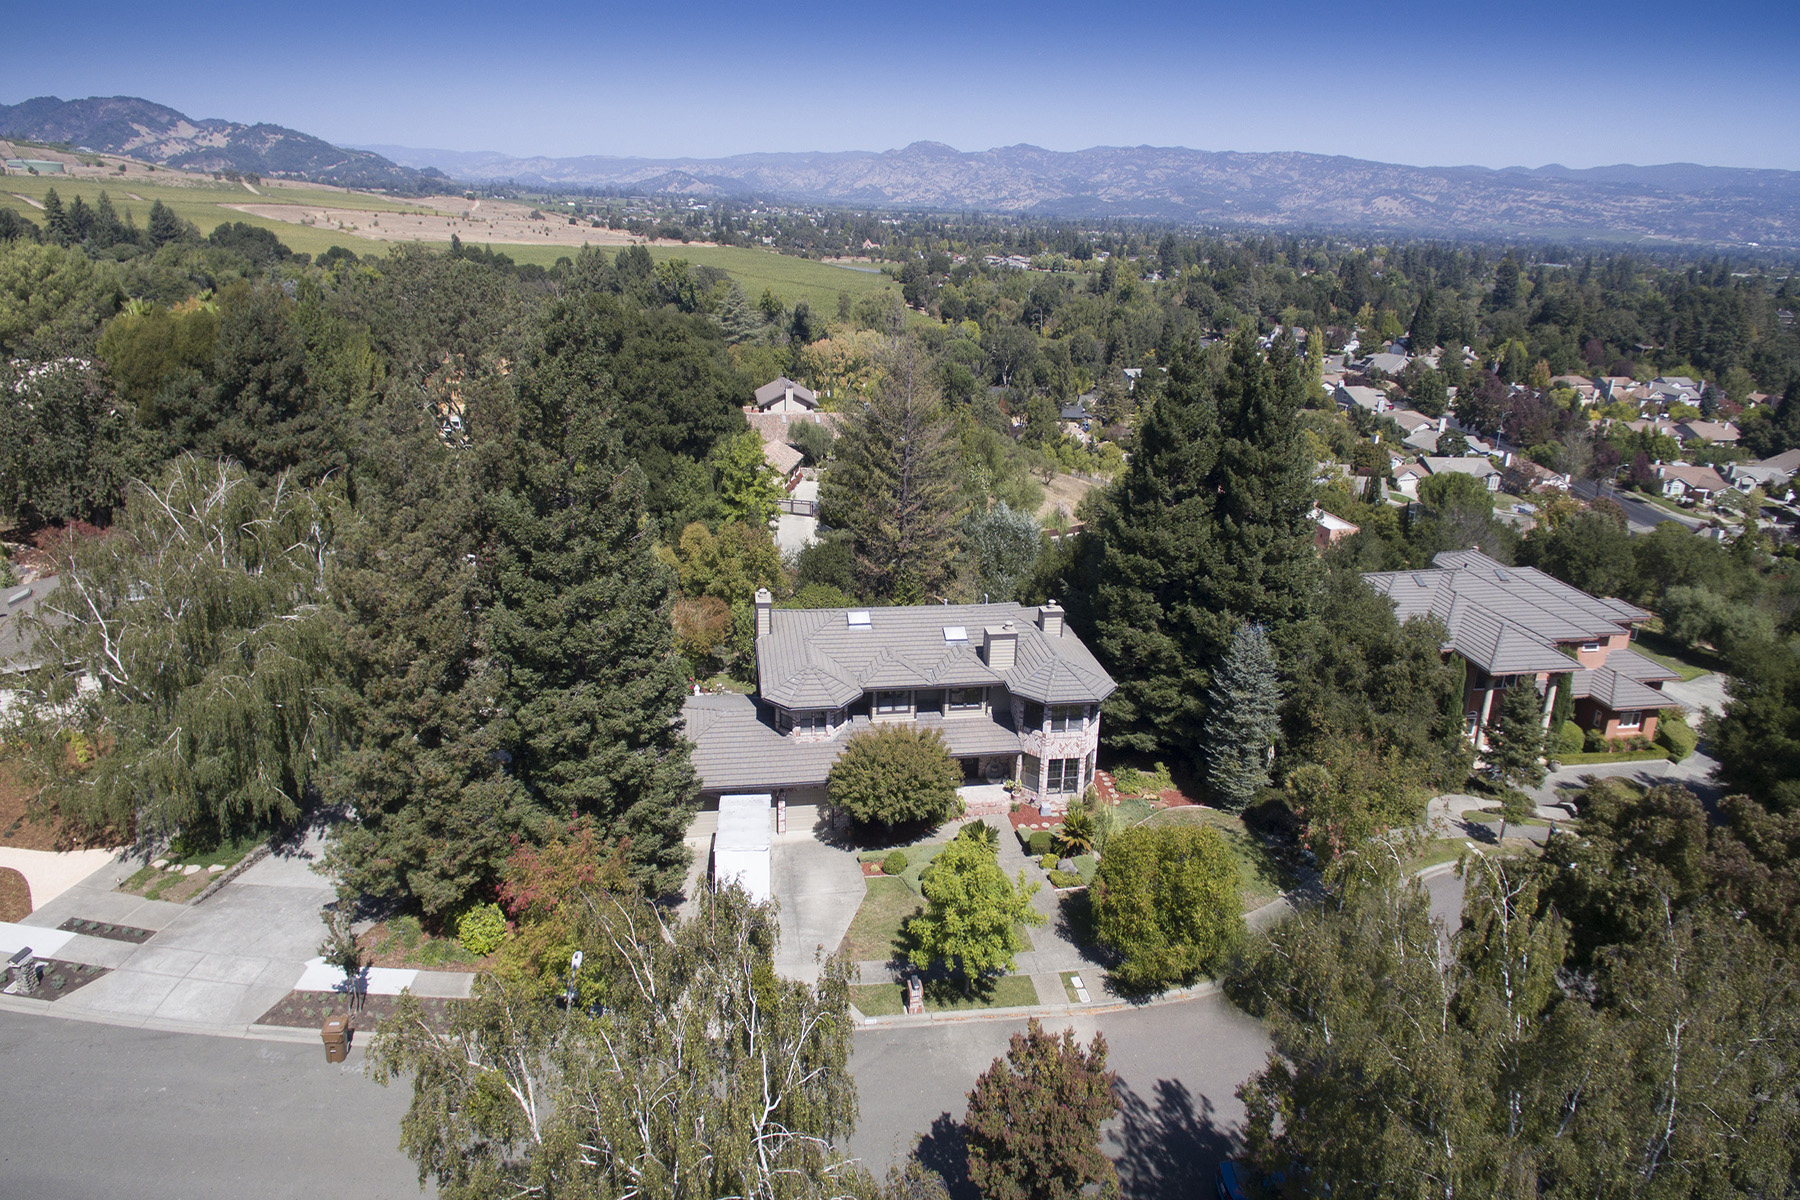 Single Family Home for Sale at 3430 Westminster Ct, Napa, CA 94558 3430 Westminster Ct Napa, California, 94558 United States